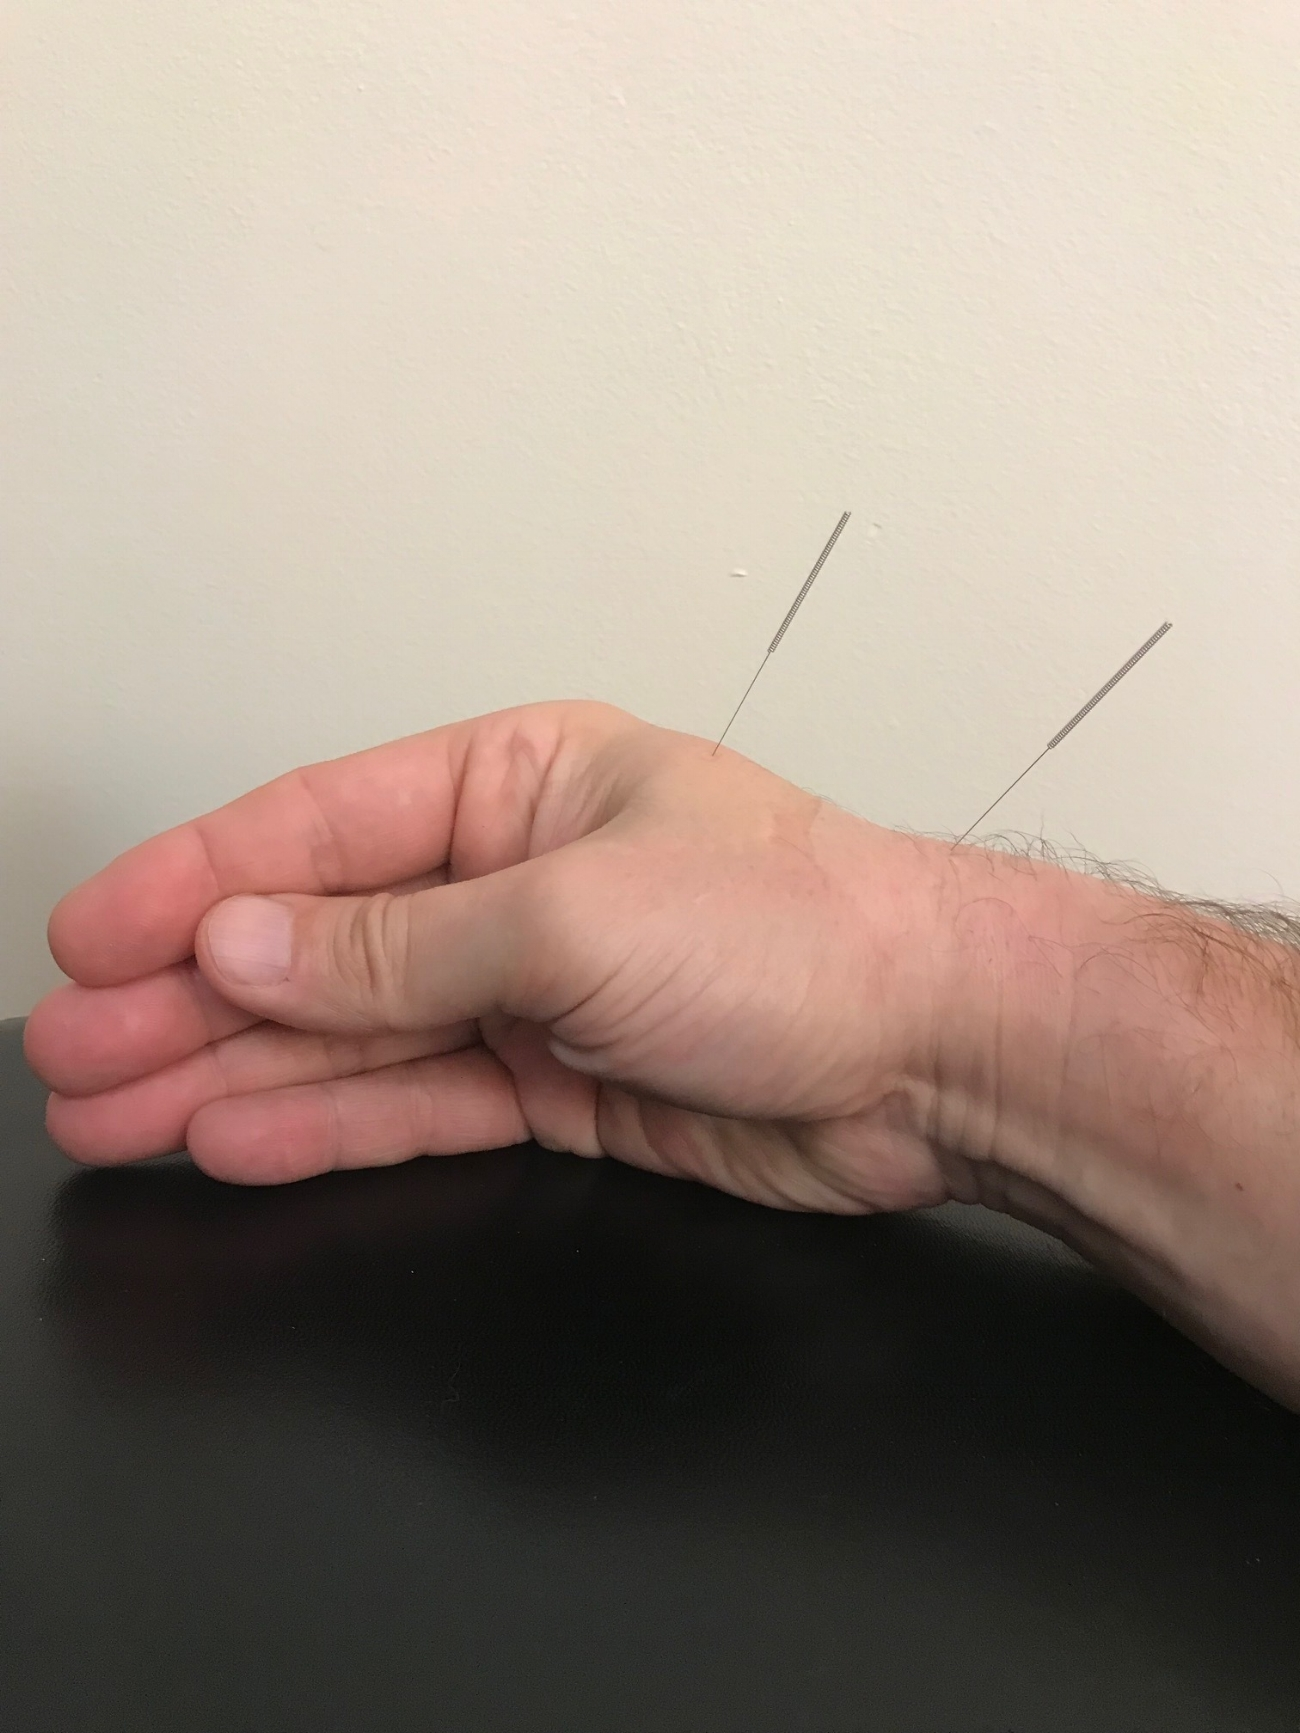 Custom Treatments to fit your needs - Our Acupuncturist will treat you with a variety of options including Acupuncture, Acupressure, Cupping and Electro Stimulation.Learn more ➝